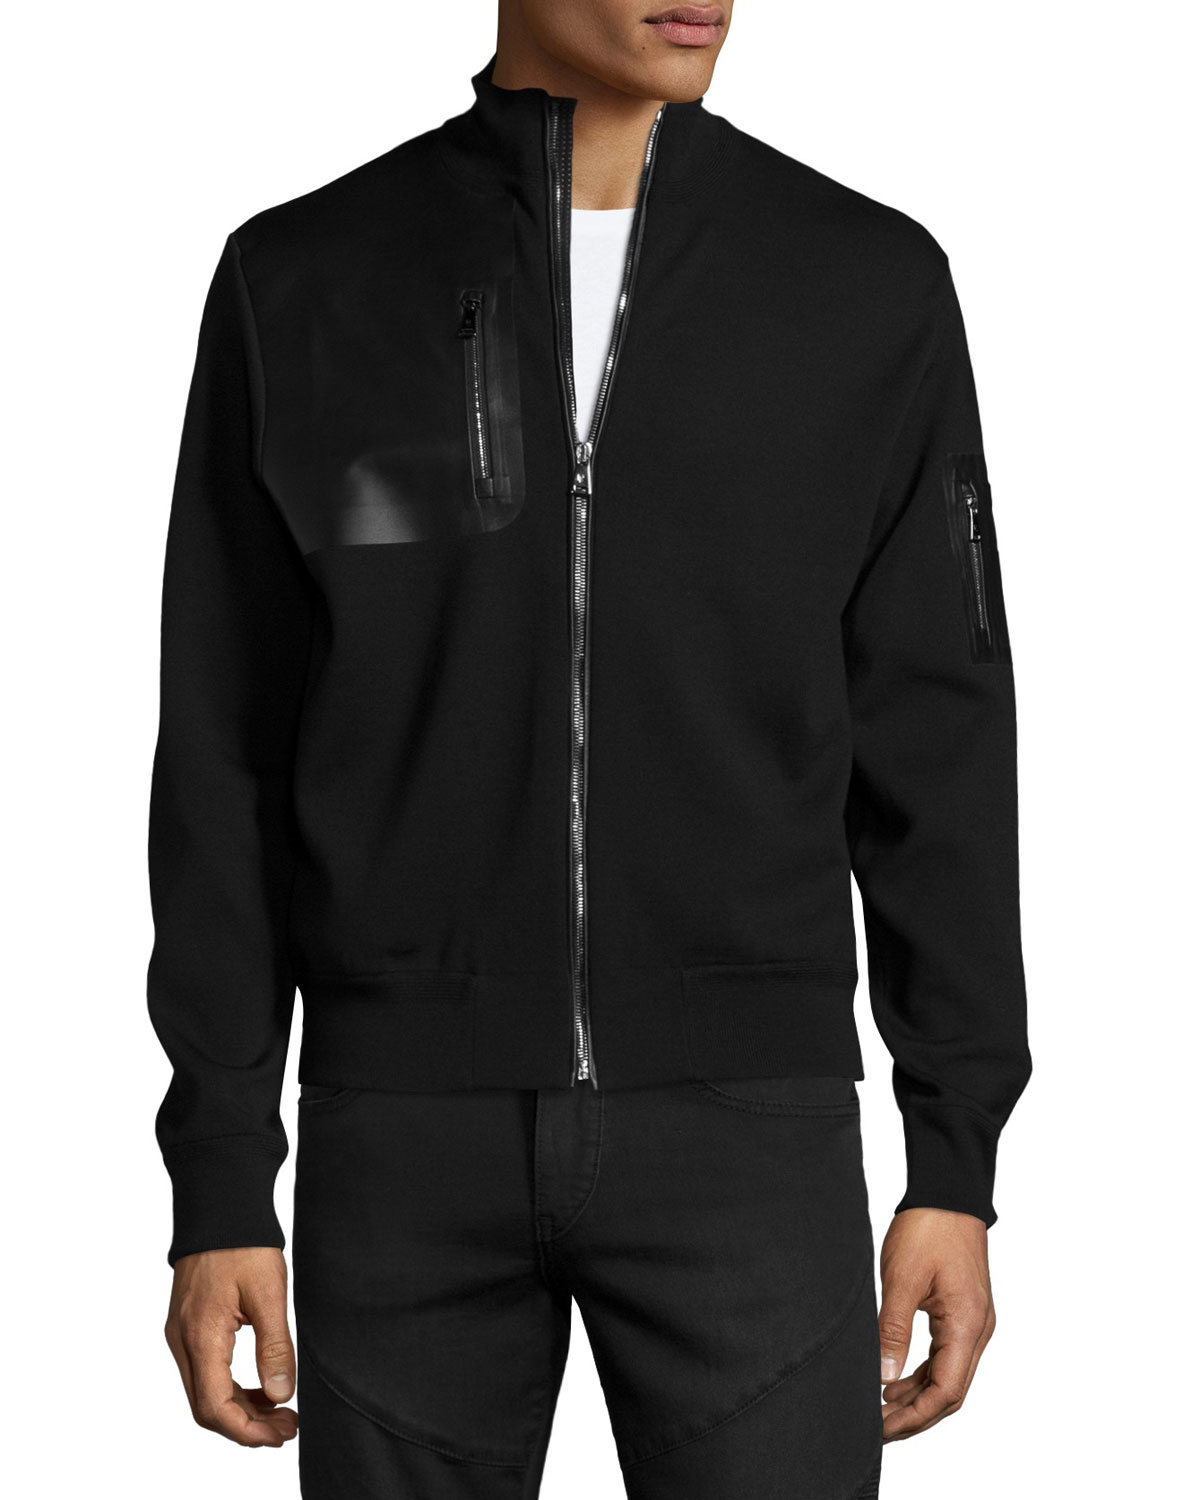 Full-Zip Jacket with Leather Trim, Black